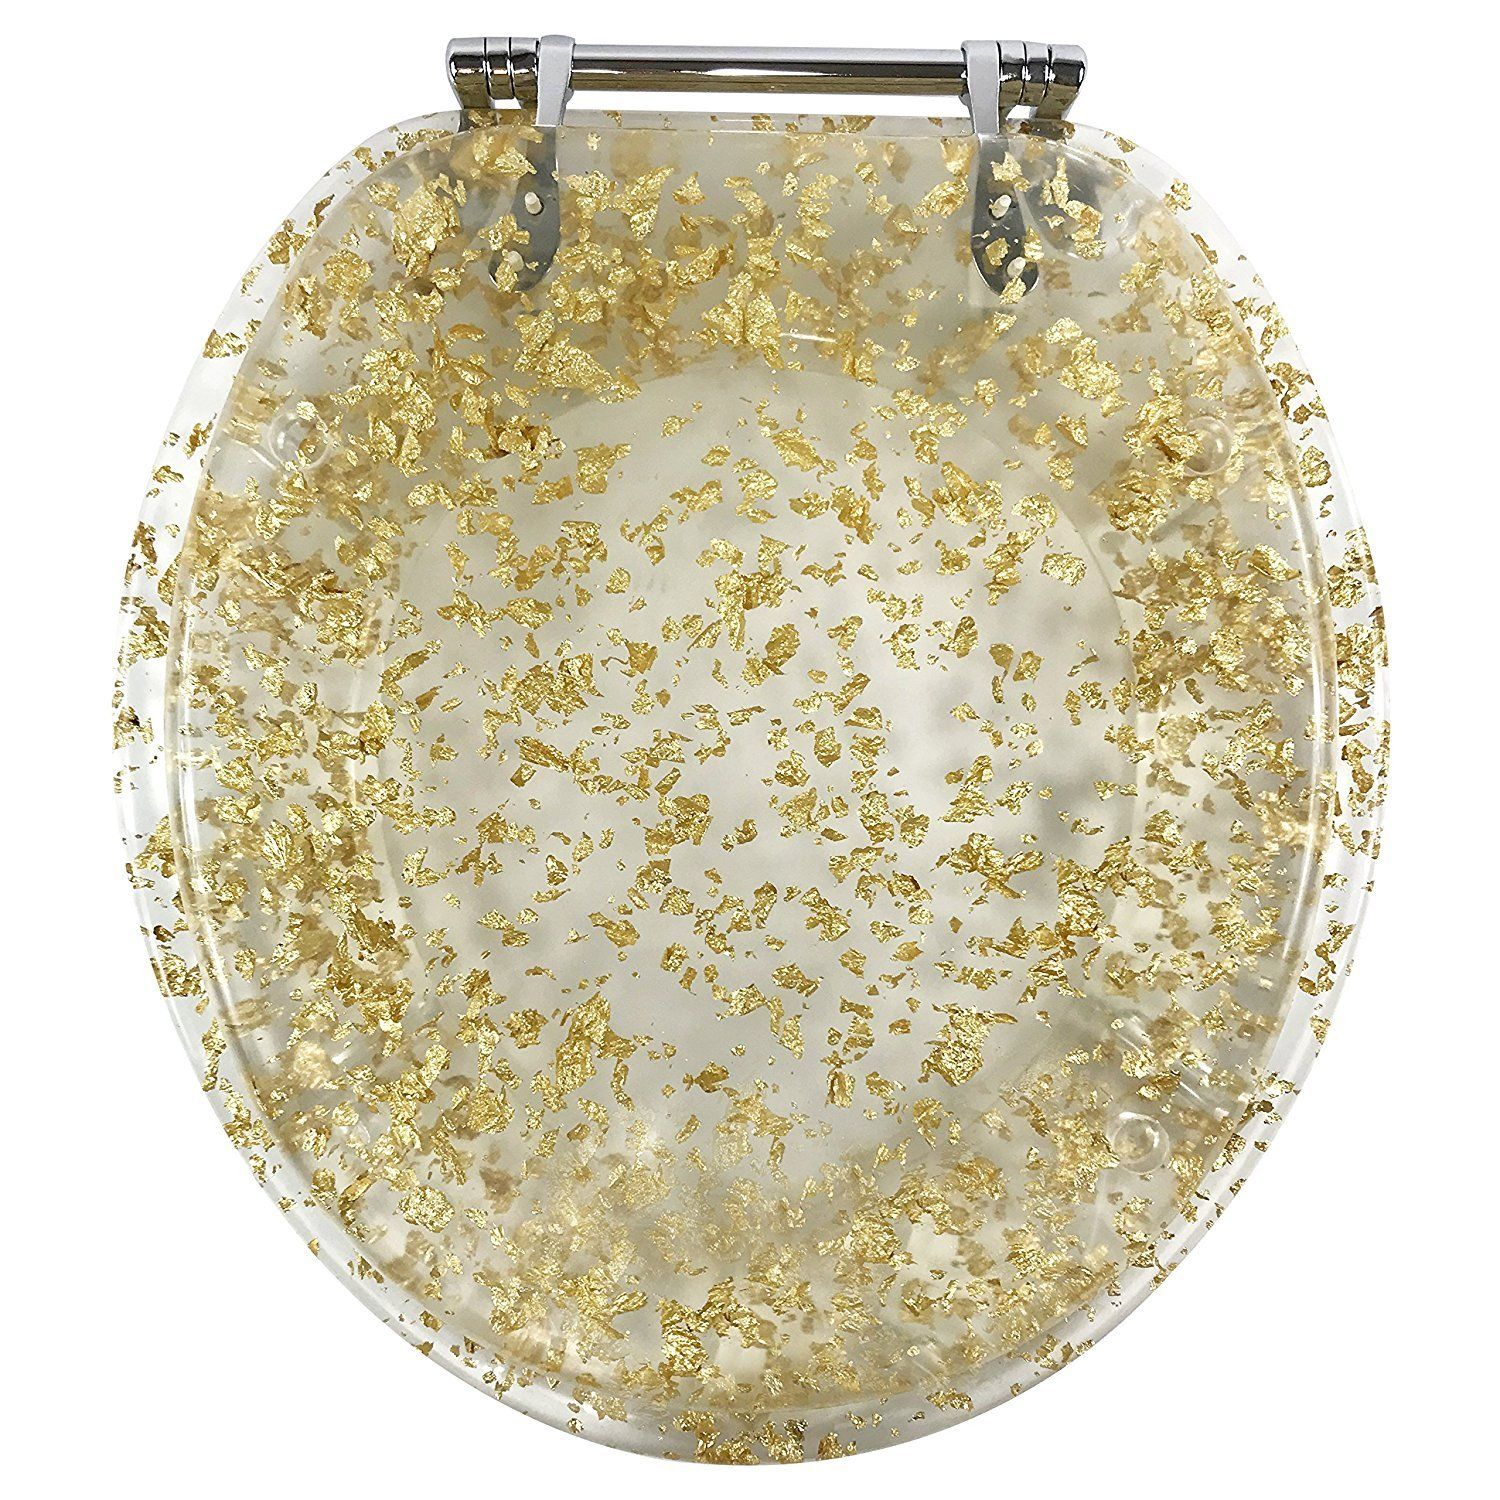 GOLD FOIL RESIN ACRYLIC TOILET SEAT, STANDARD ROUND WITH CHROME HINGES